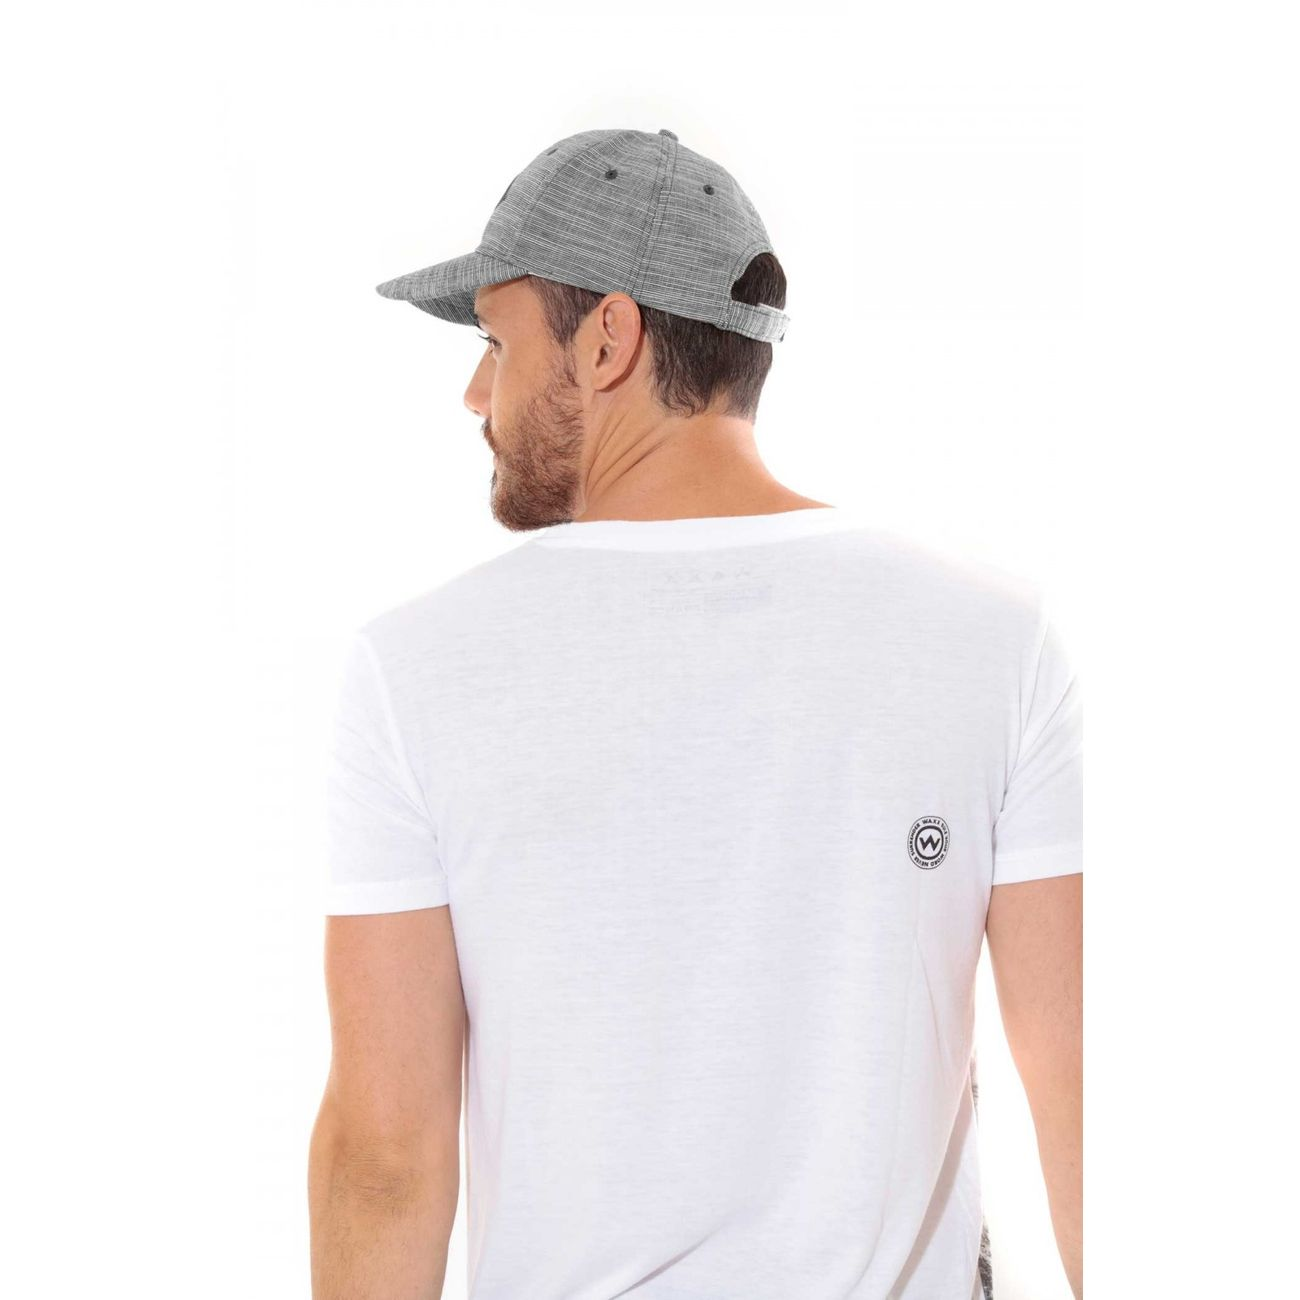 ModeLifestyle Casquette ModeLifestyle Misty Adulte Casquette Adulte ModeLifestyle Misty Waxx Adulte Waxx Waxx Casquette jLc5ARq34S